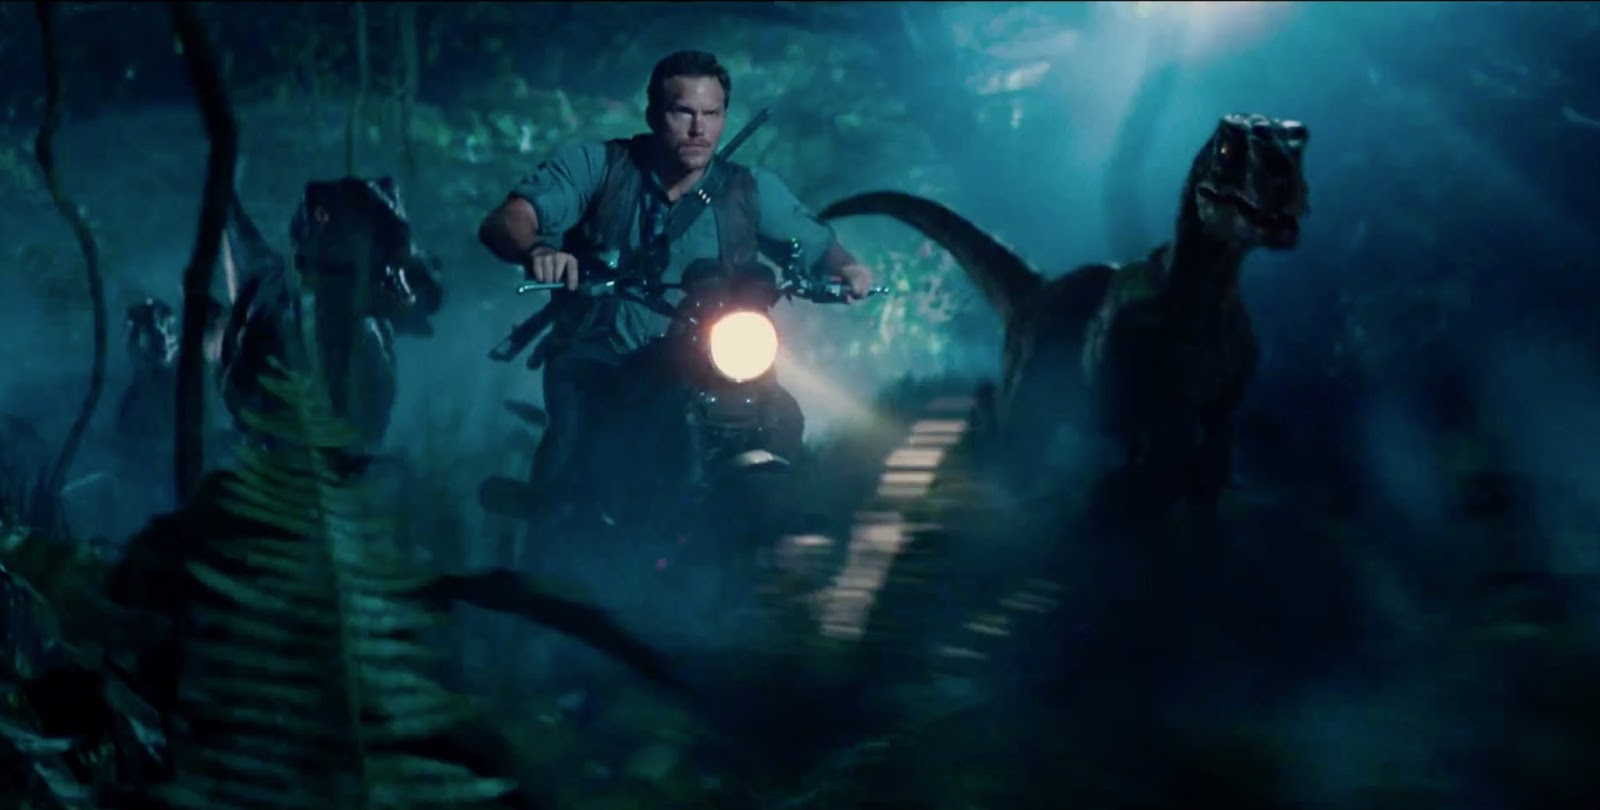 film jurassic world free download the flirt files